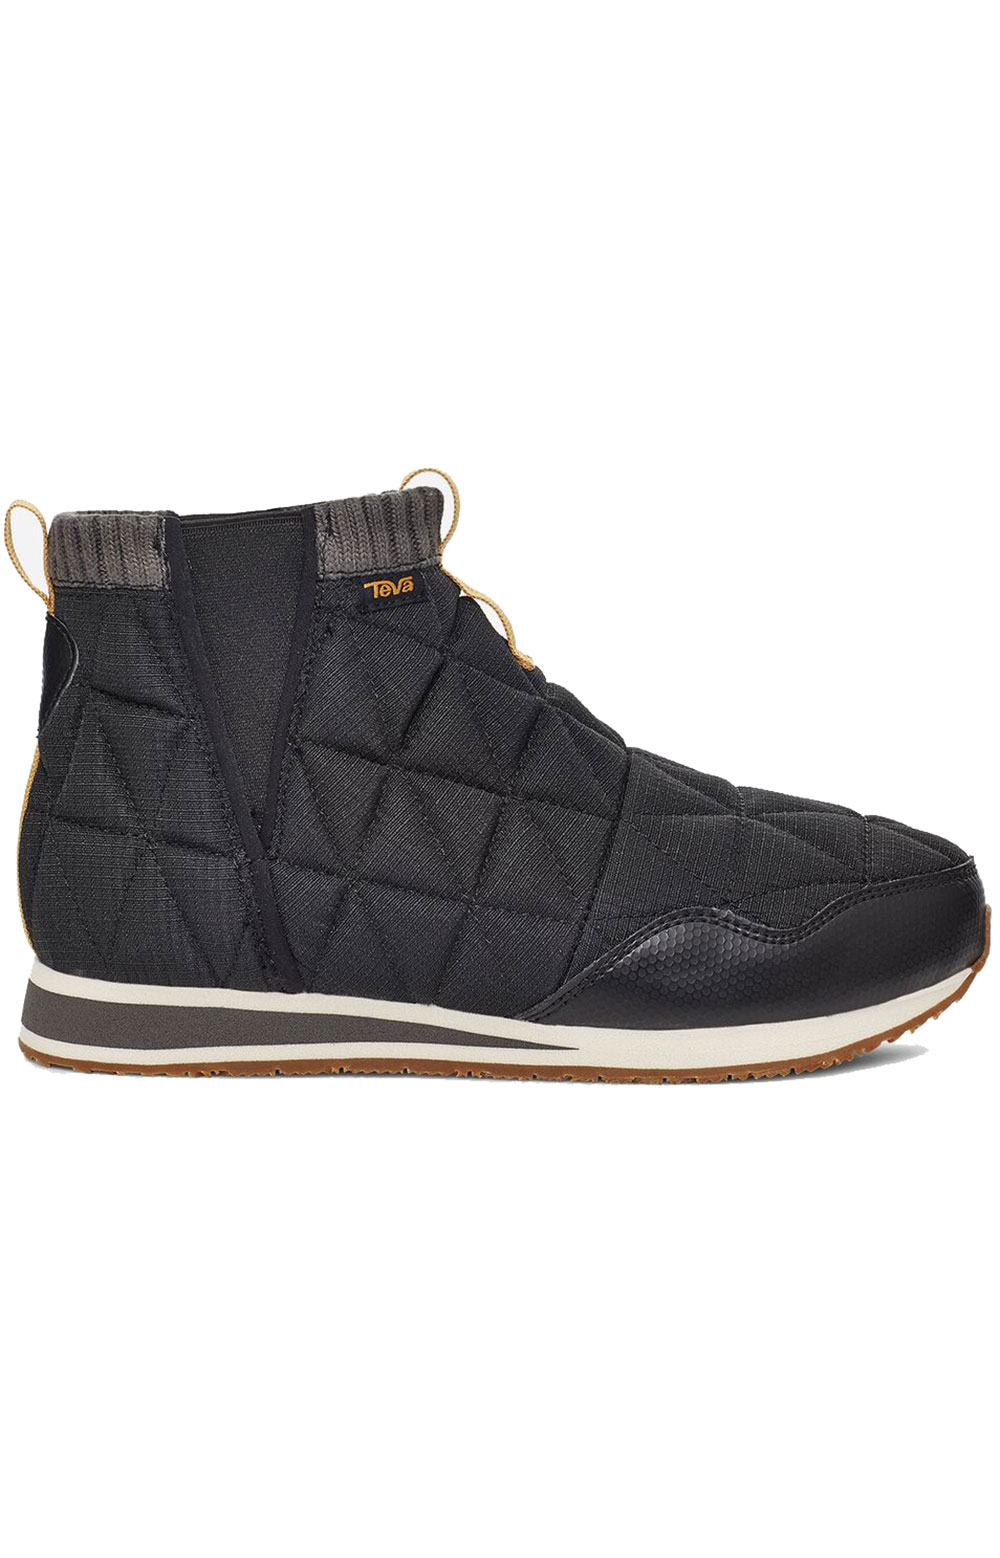 (1123431) ReEMBER Mid Shoes - Black